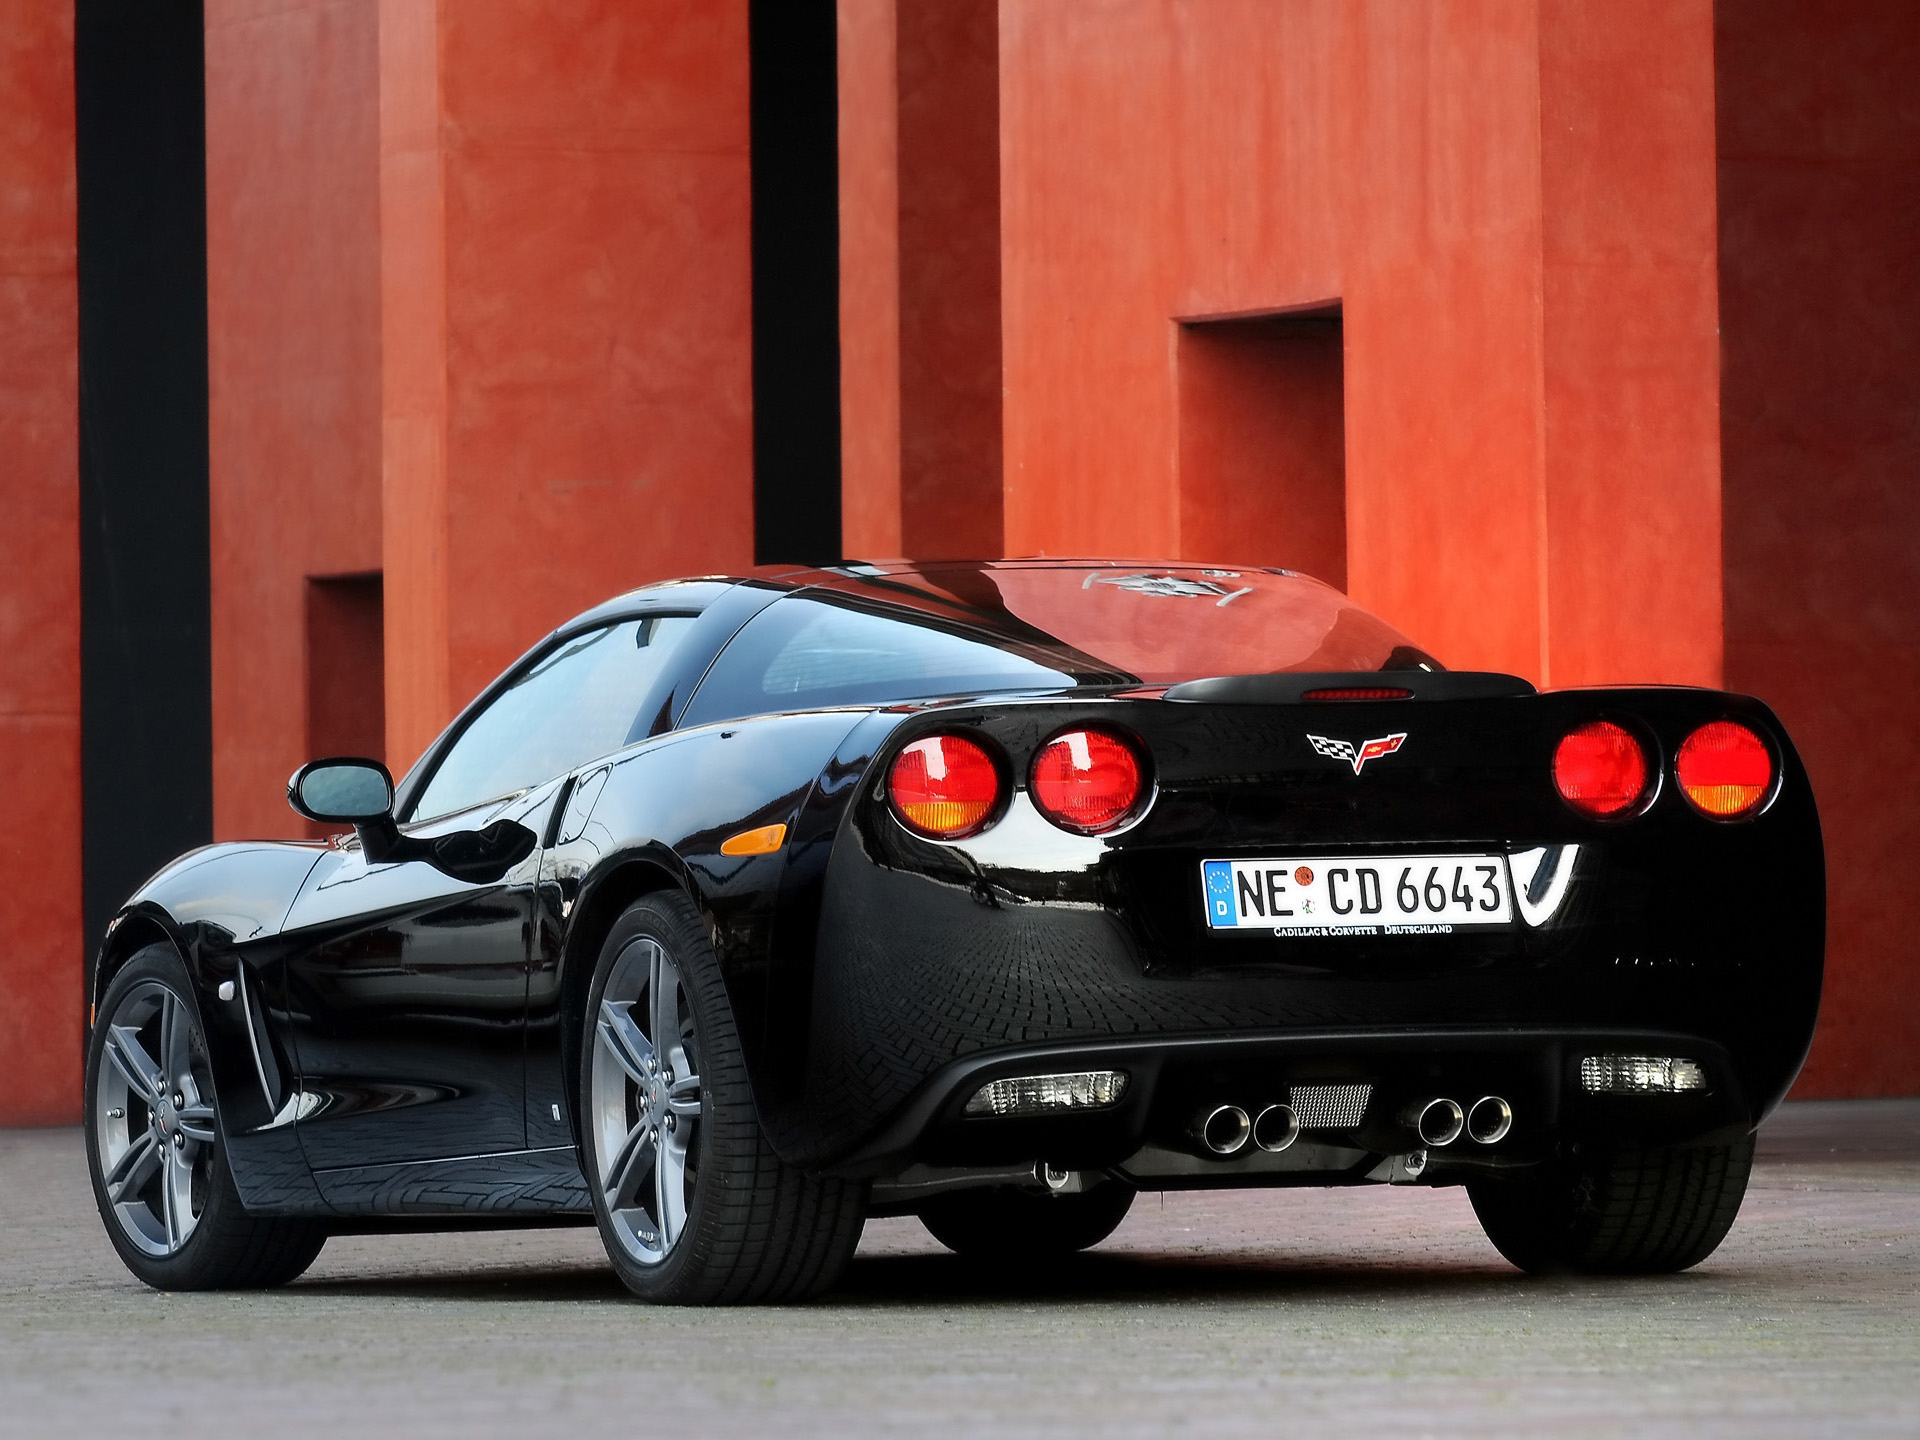 Chevrolet Corvette Background